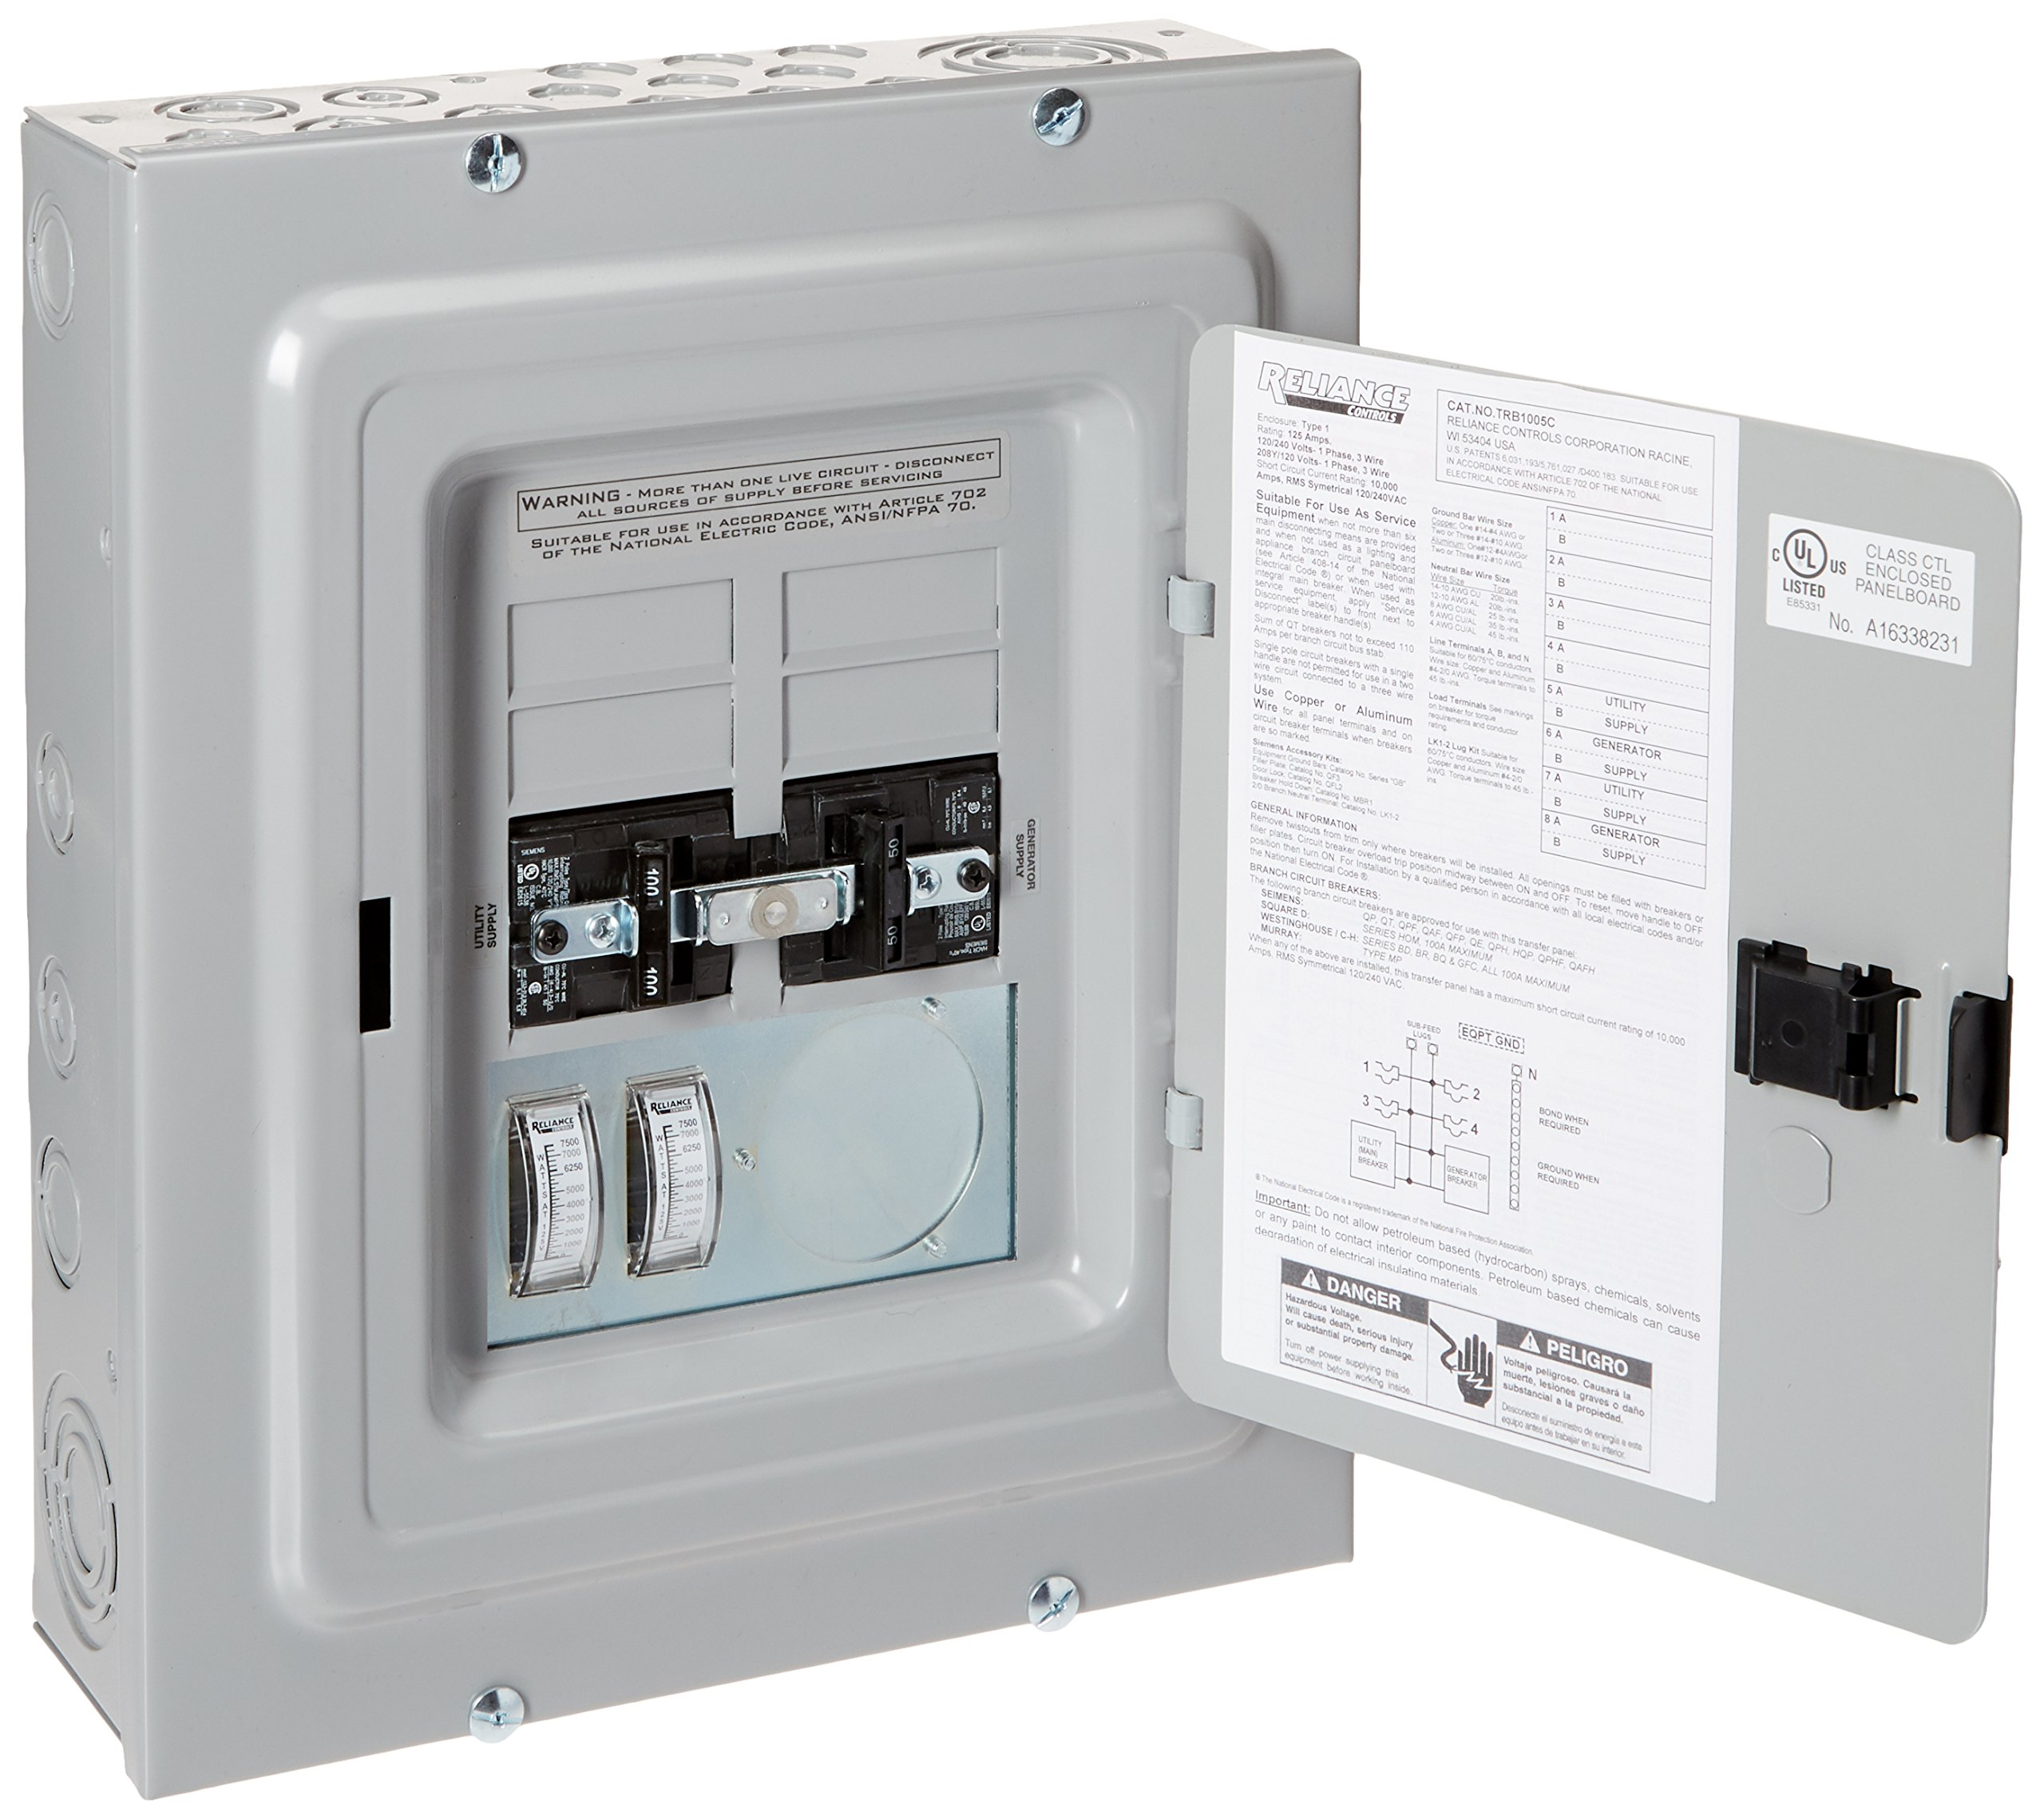 Reliance Controls Corporation TRB1005C Transfer Panel with Meters, 50-Amp